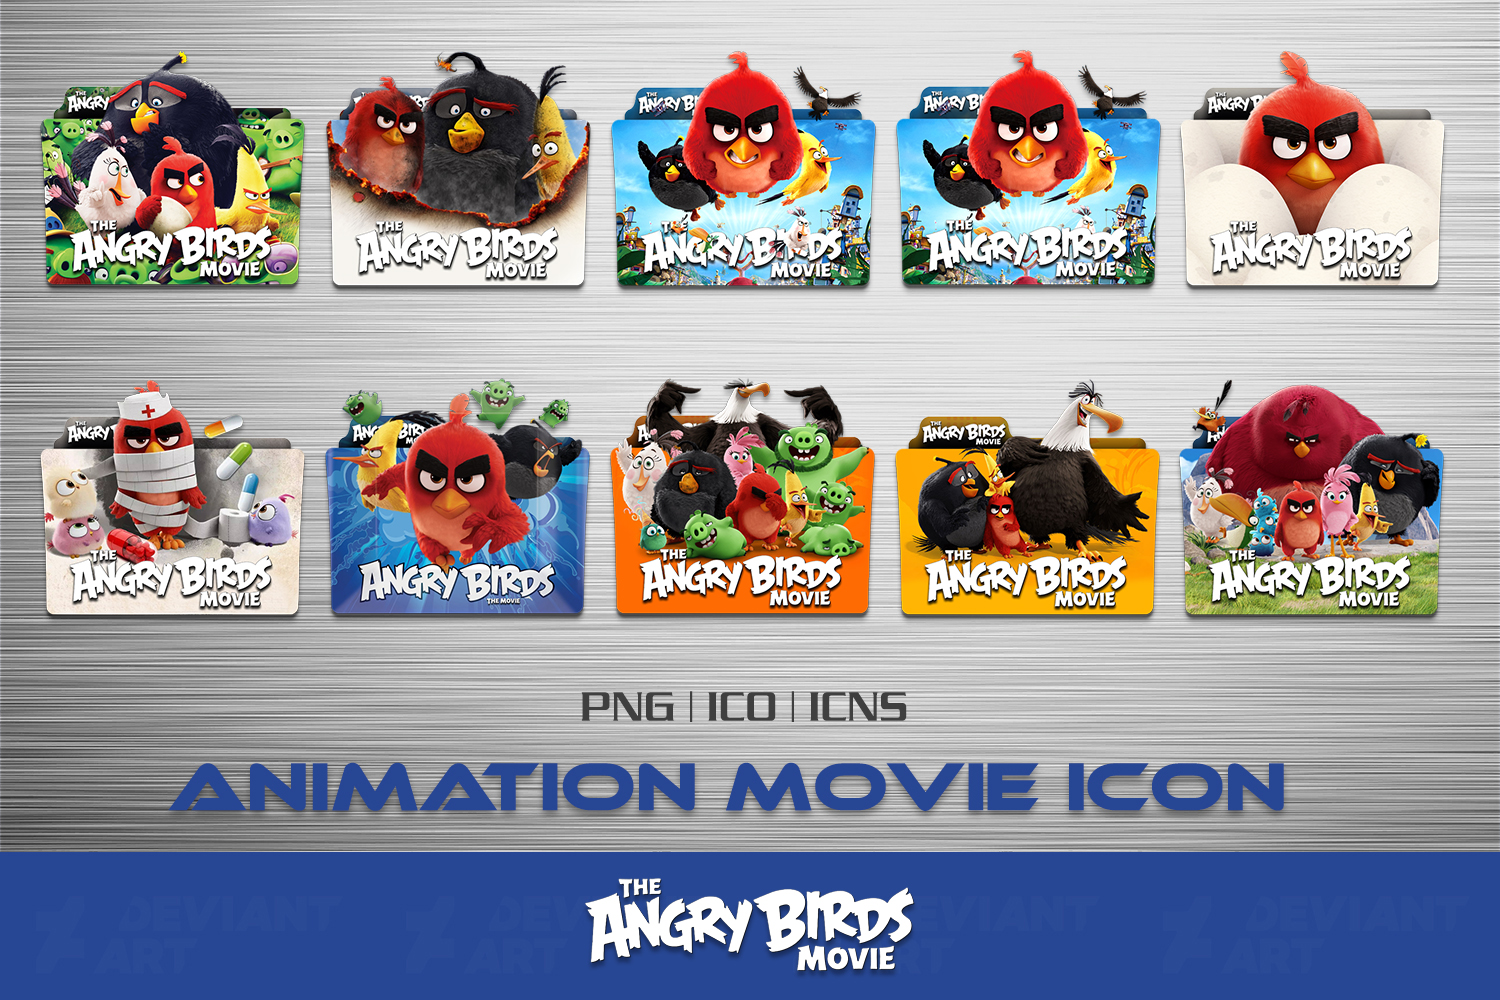 The Angry Birds Movie 2016 Folder Icon Pack By Ahmternbrs60 On Deviantart